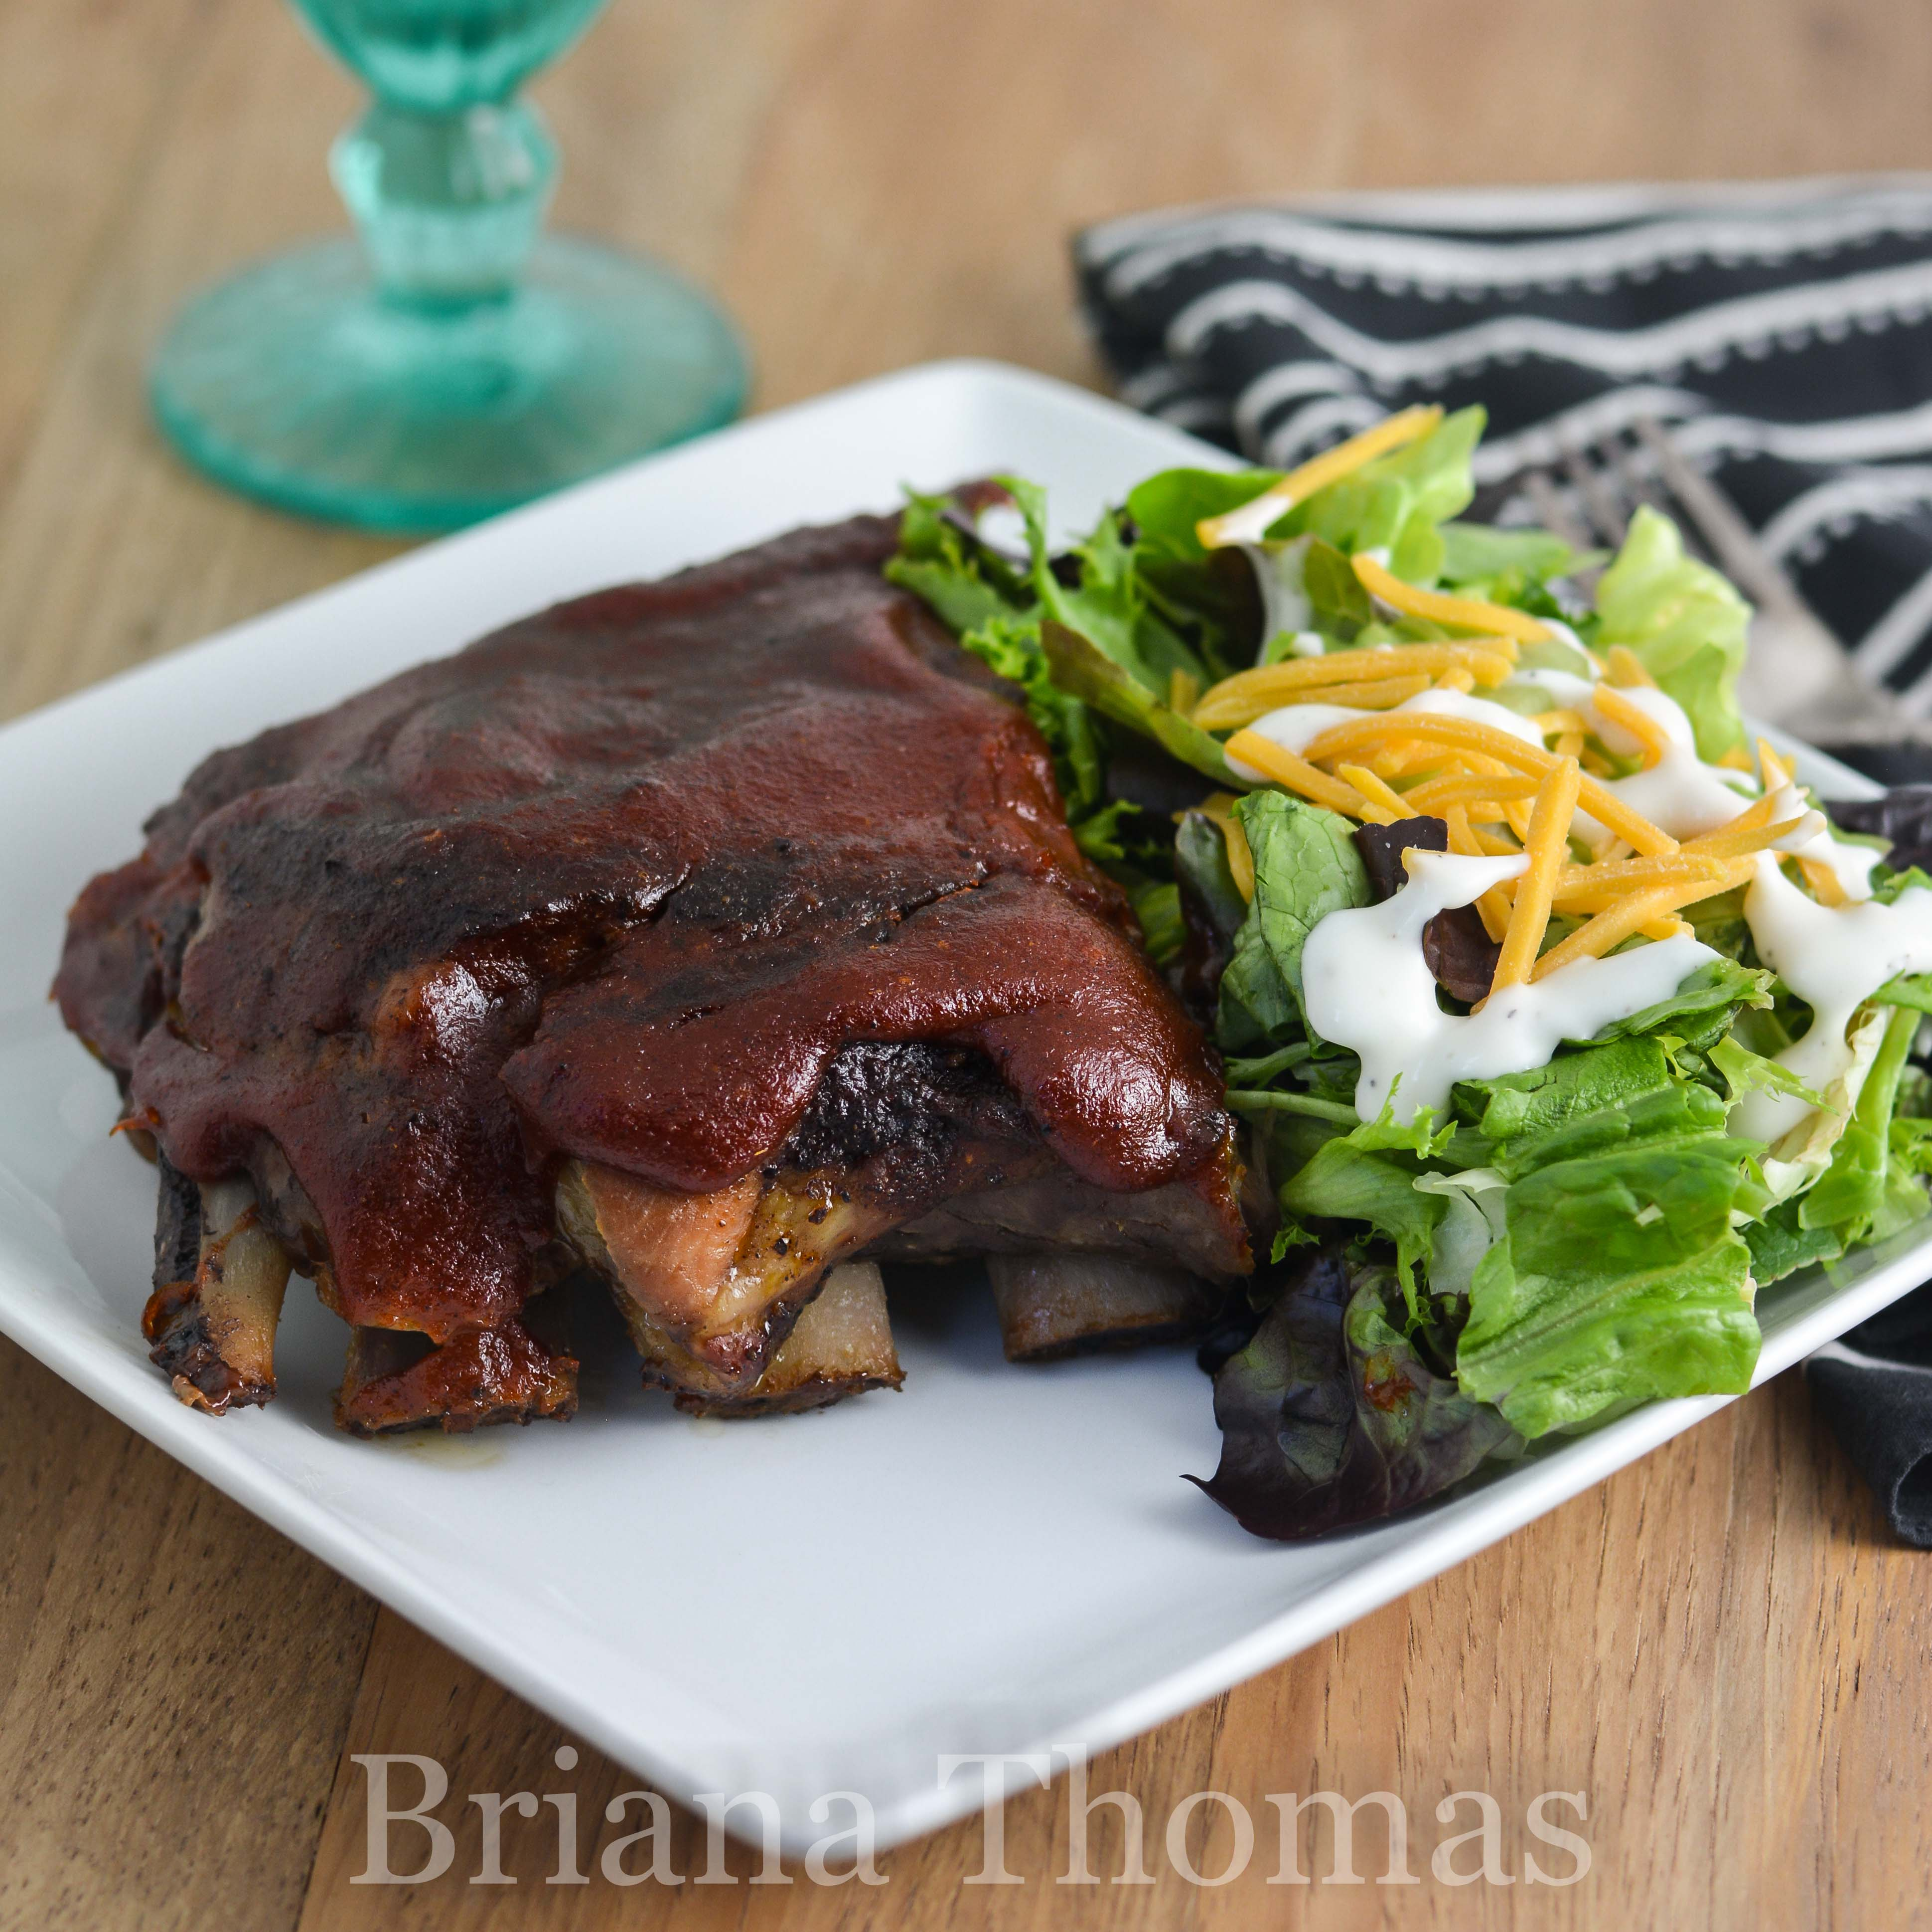 Bri's Baked Barbecue Ribs are basted with a delicious rib sauce and baked until they fall off the bone! THM:S, low carb, sugar free, gluten/egg/dairy/nut free